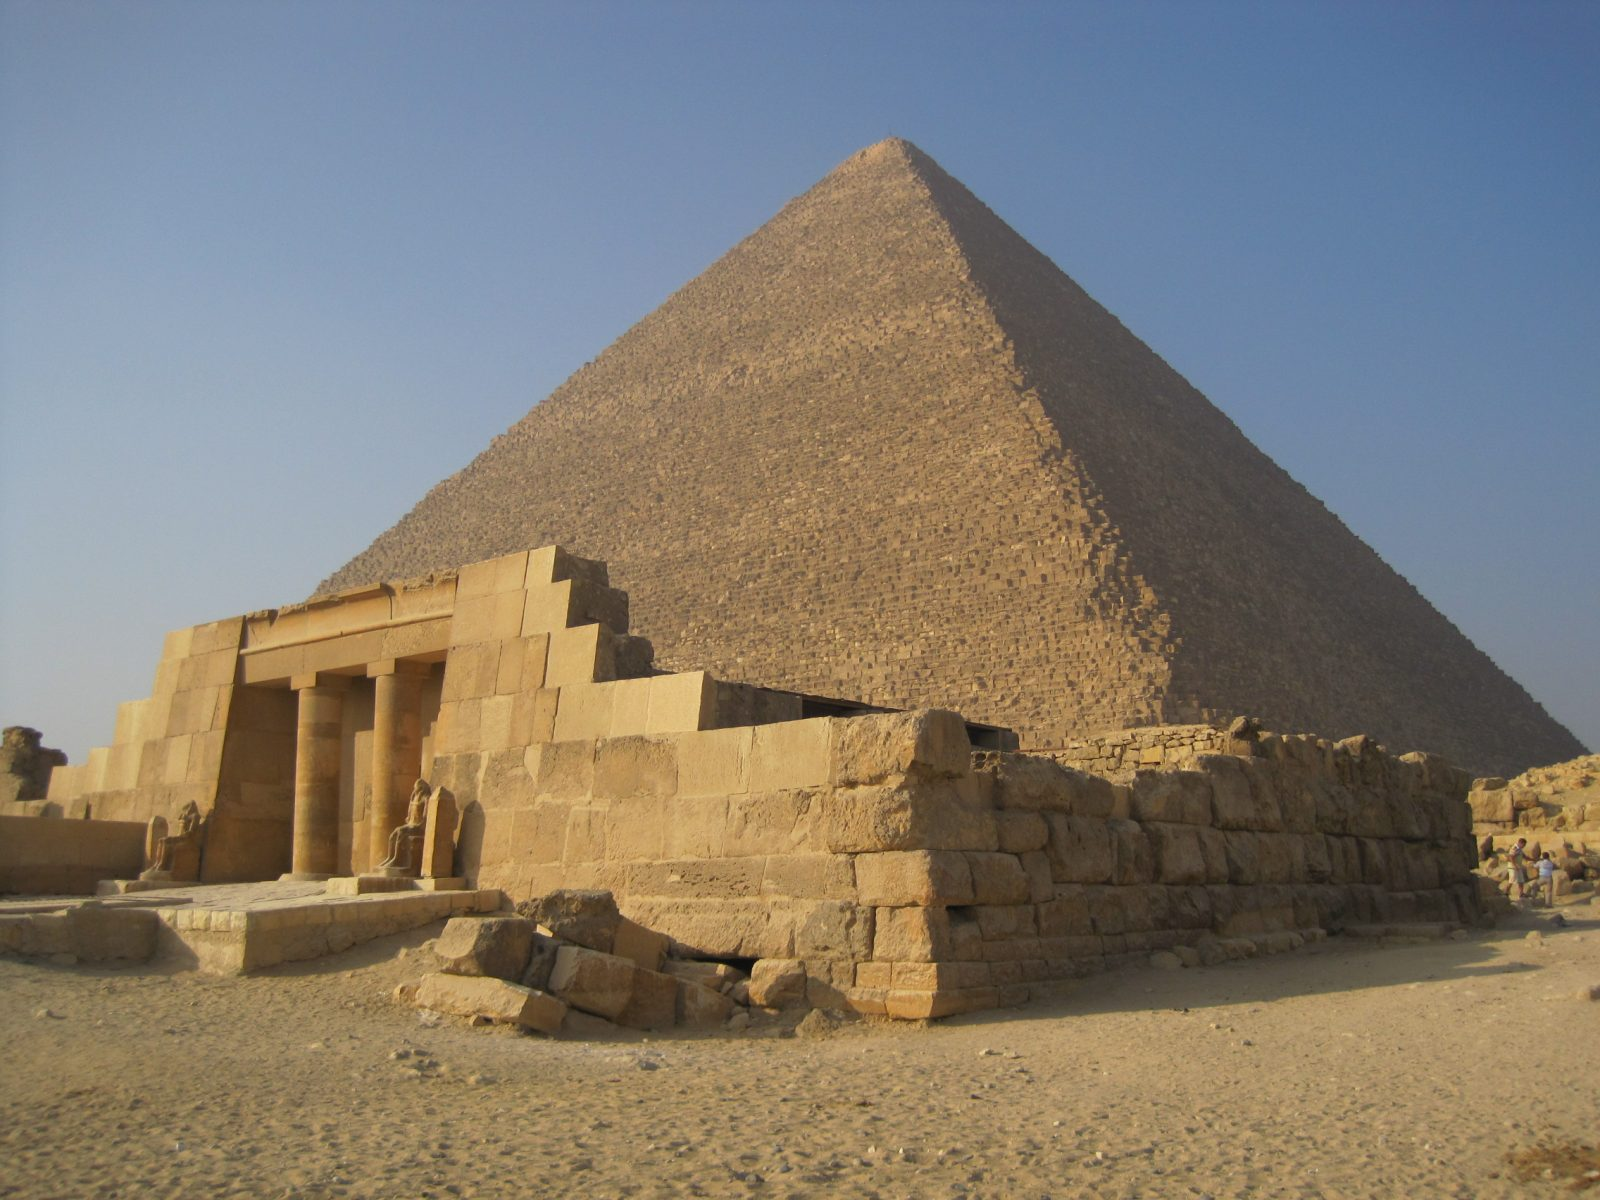 The Great Pyramid of Giza, in Egypt